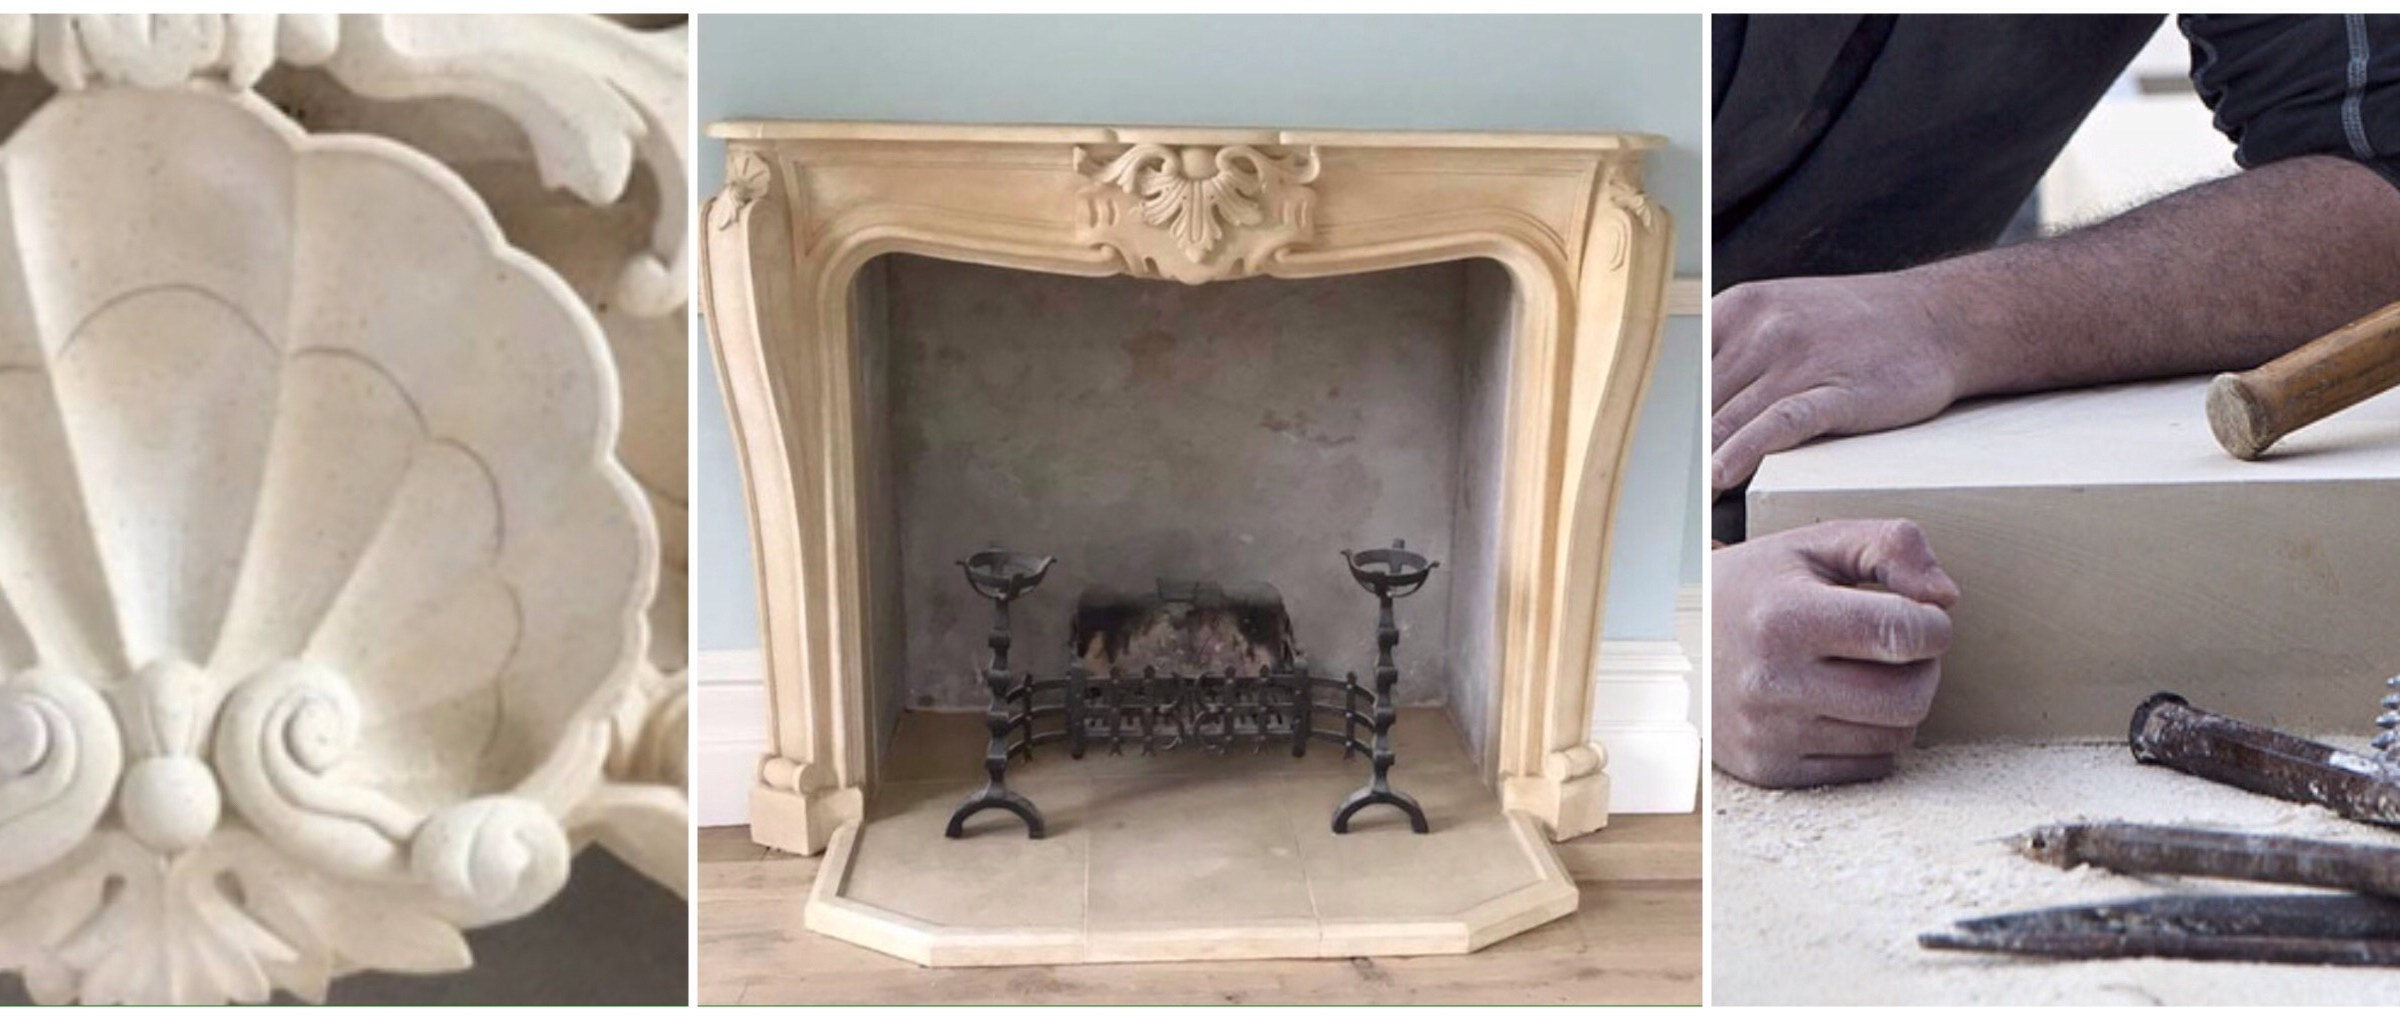 Lepine french lime stone fine grain carving sculpting fireplace